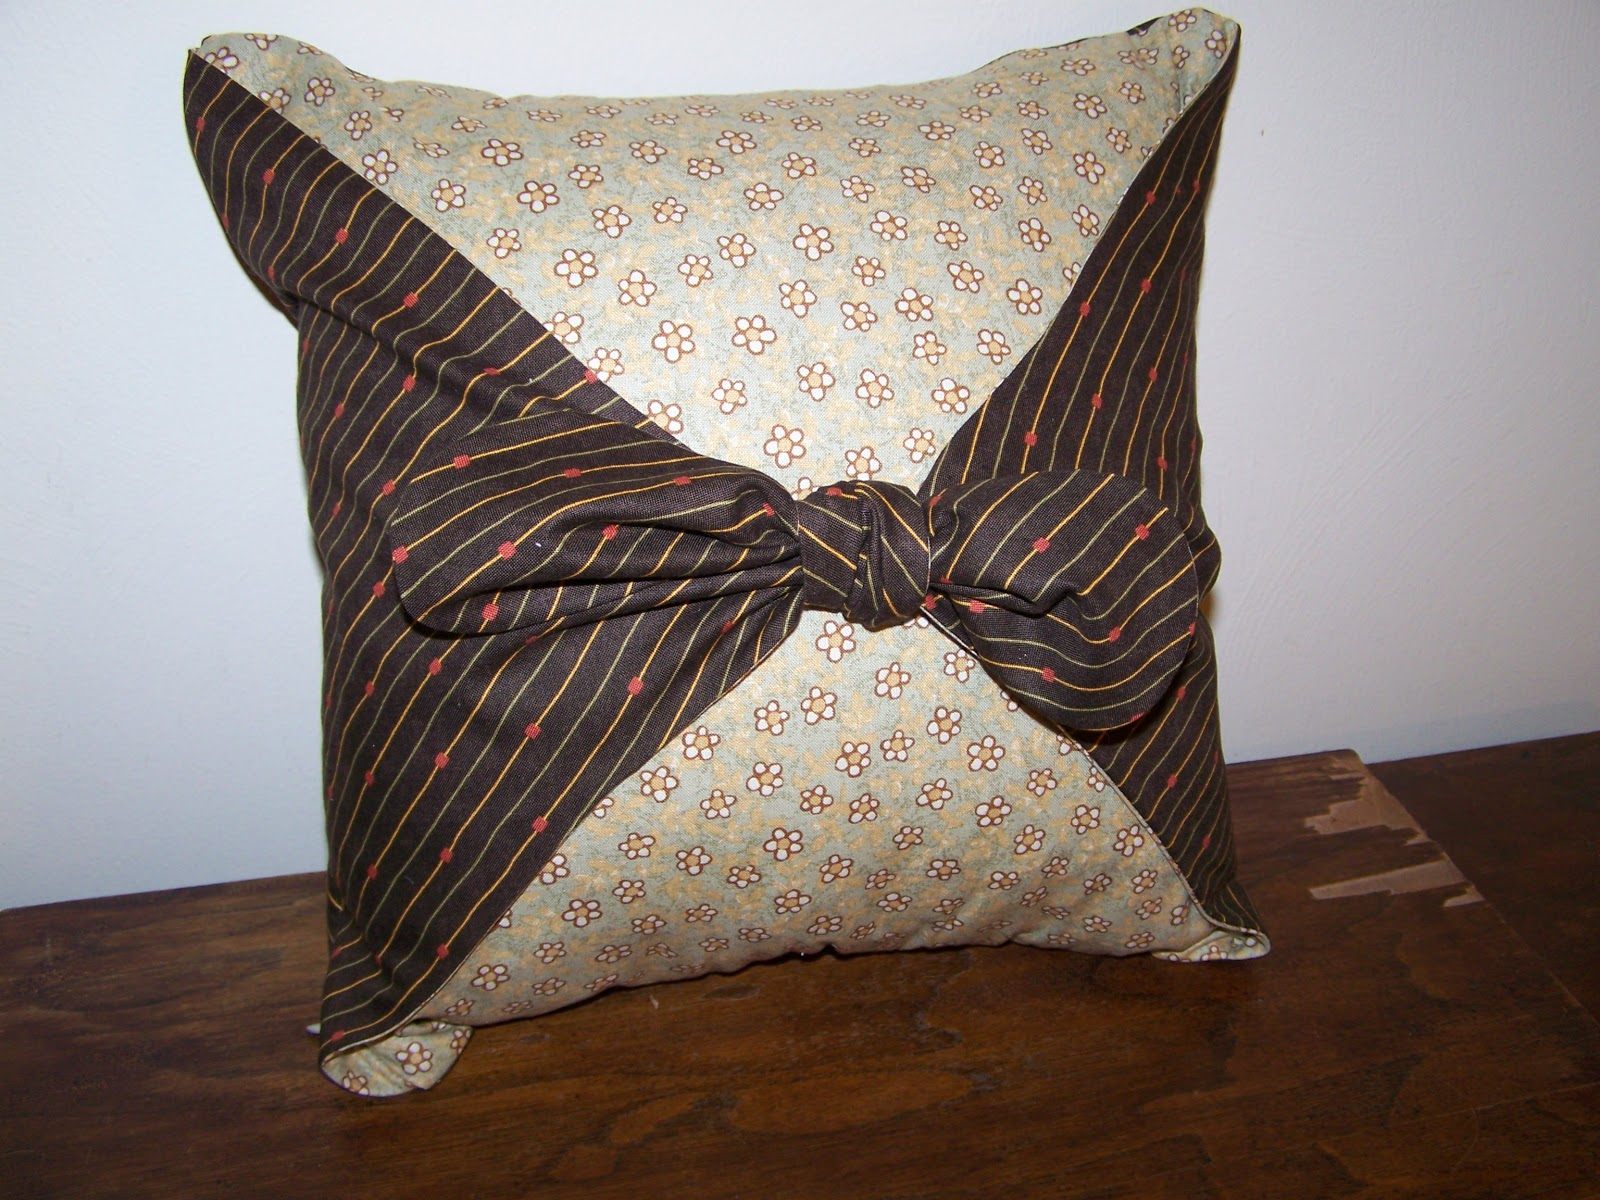 How To Make A Tie Throw Pillow : sewcreatelive: How to Make a Reversible Pillow with Tie